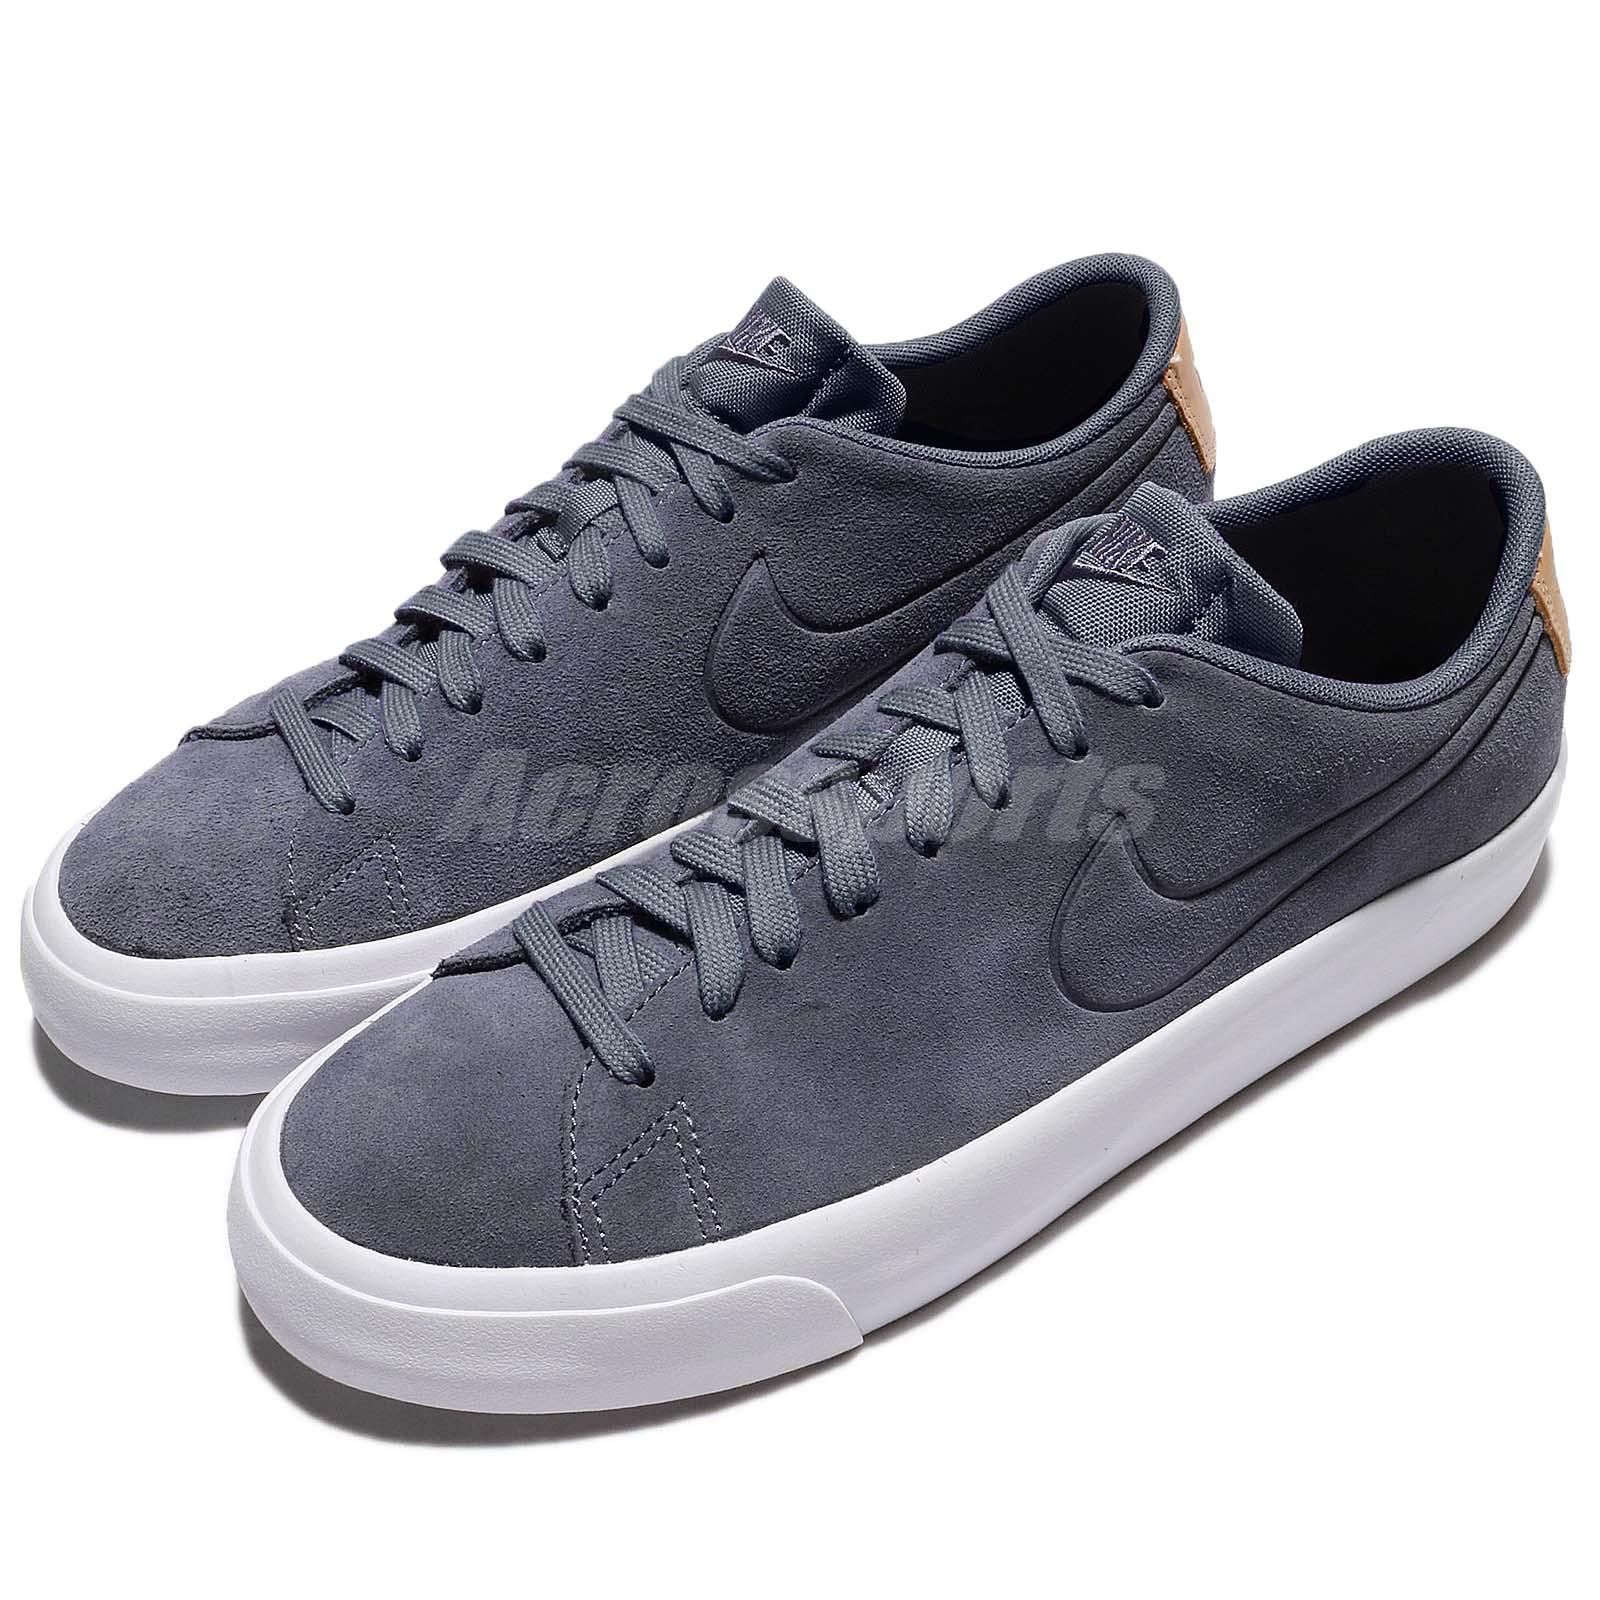 size 40 a826a f1461 Details about Nike Blazer Studio Low Grey White Suede Men Casual Shoes  Sneakers 880872-401